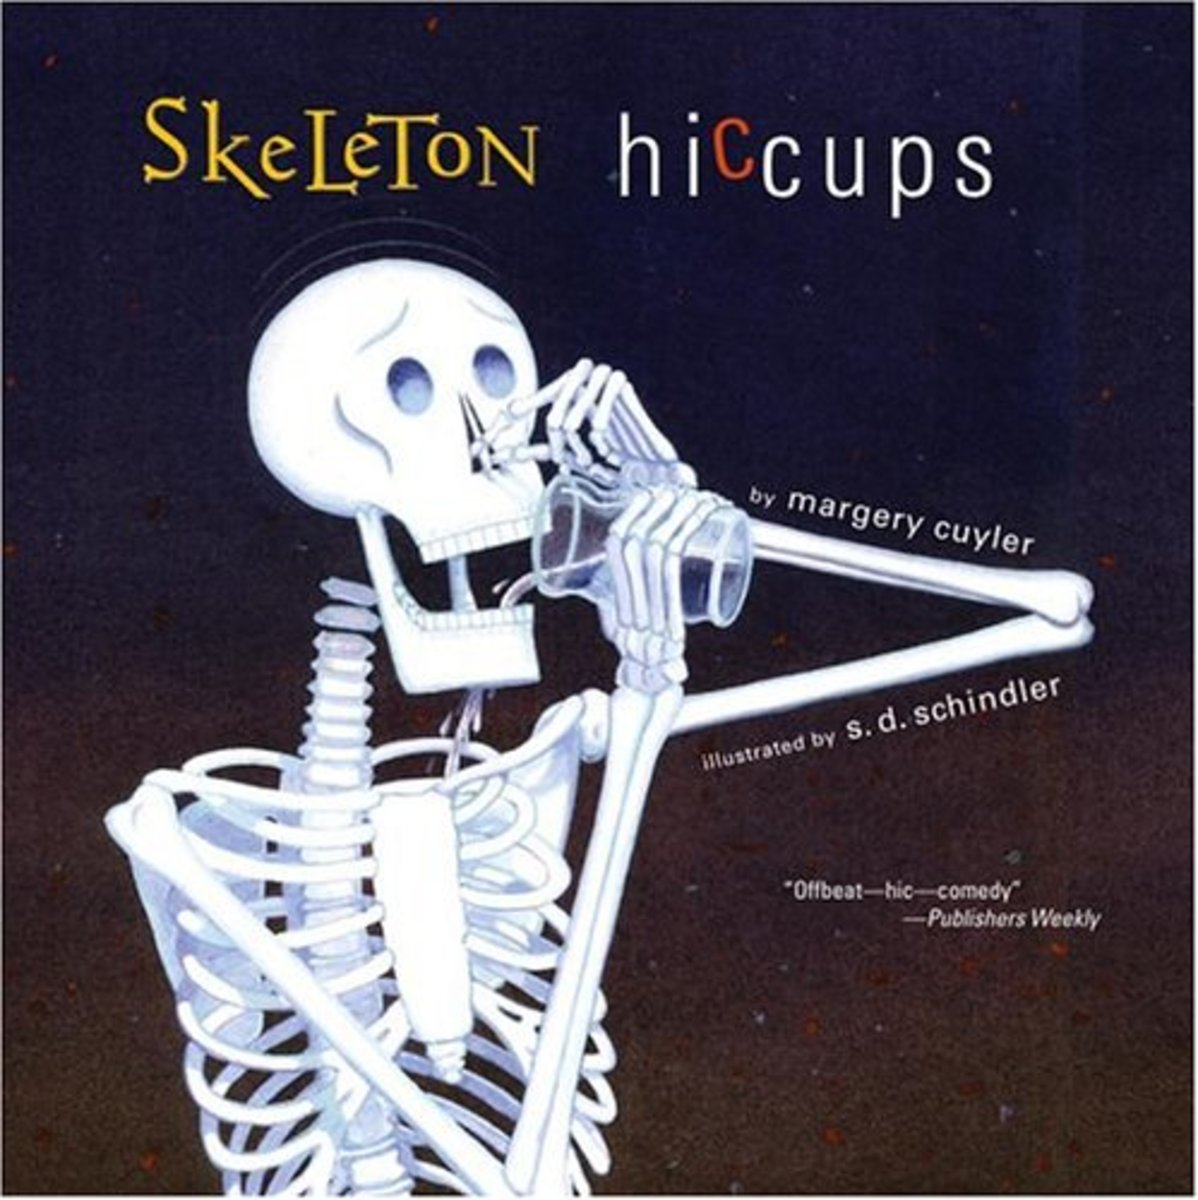 Skeleton Hiccups by Margery Cuyler